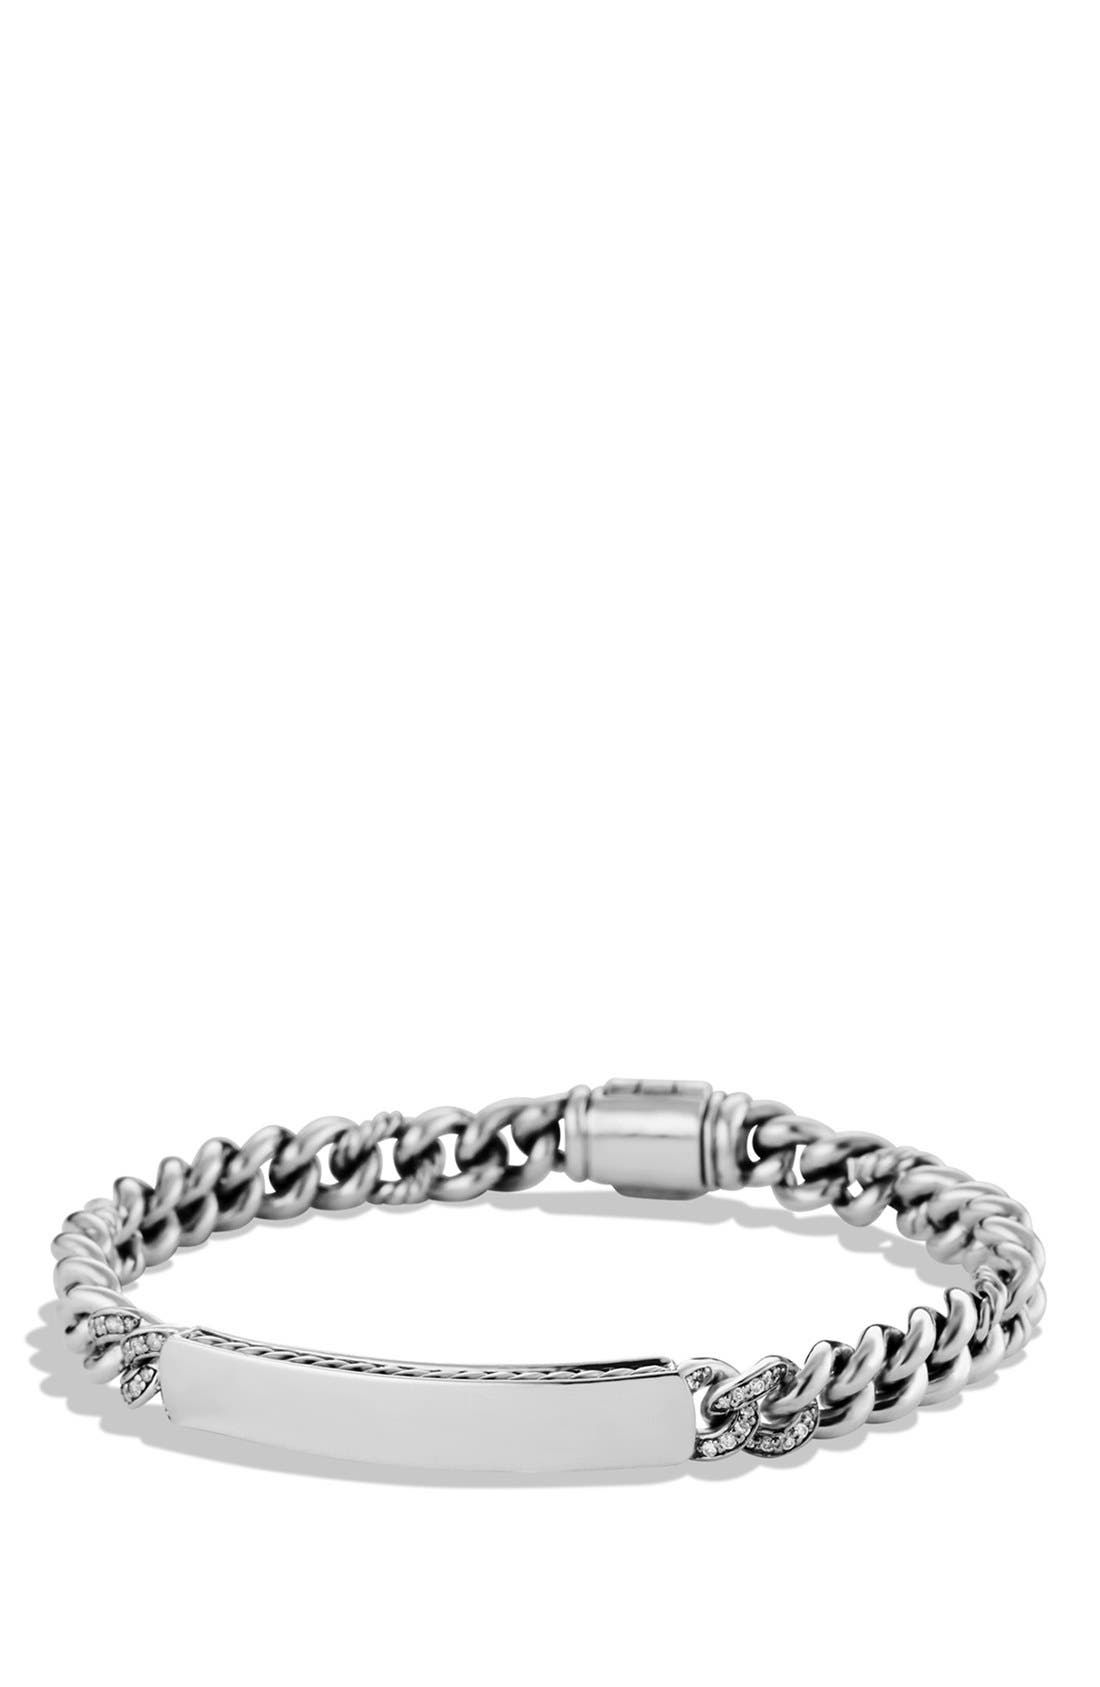 David Yurman 'Petite Pavé' Curb Link ID Bracelet with Diamonds